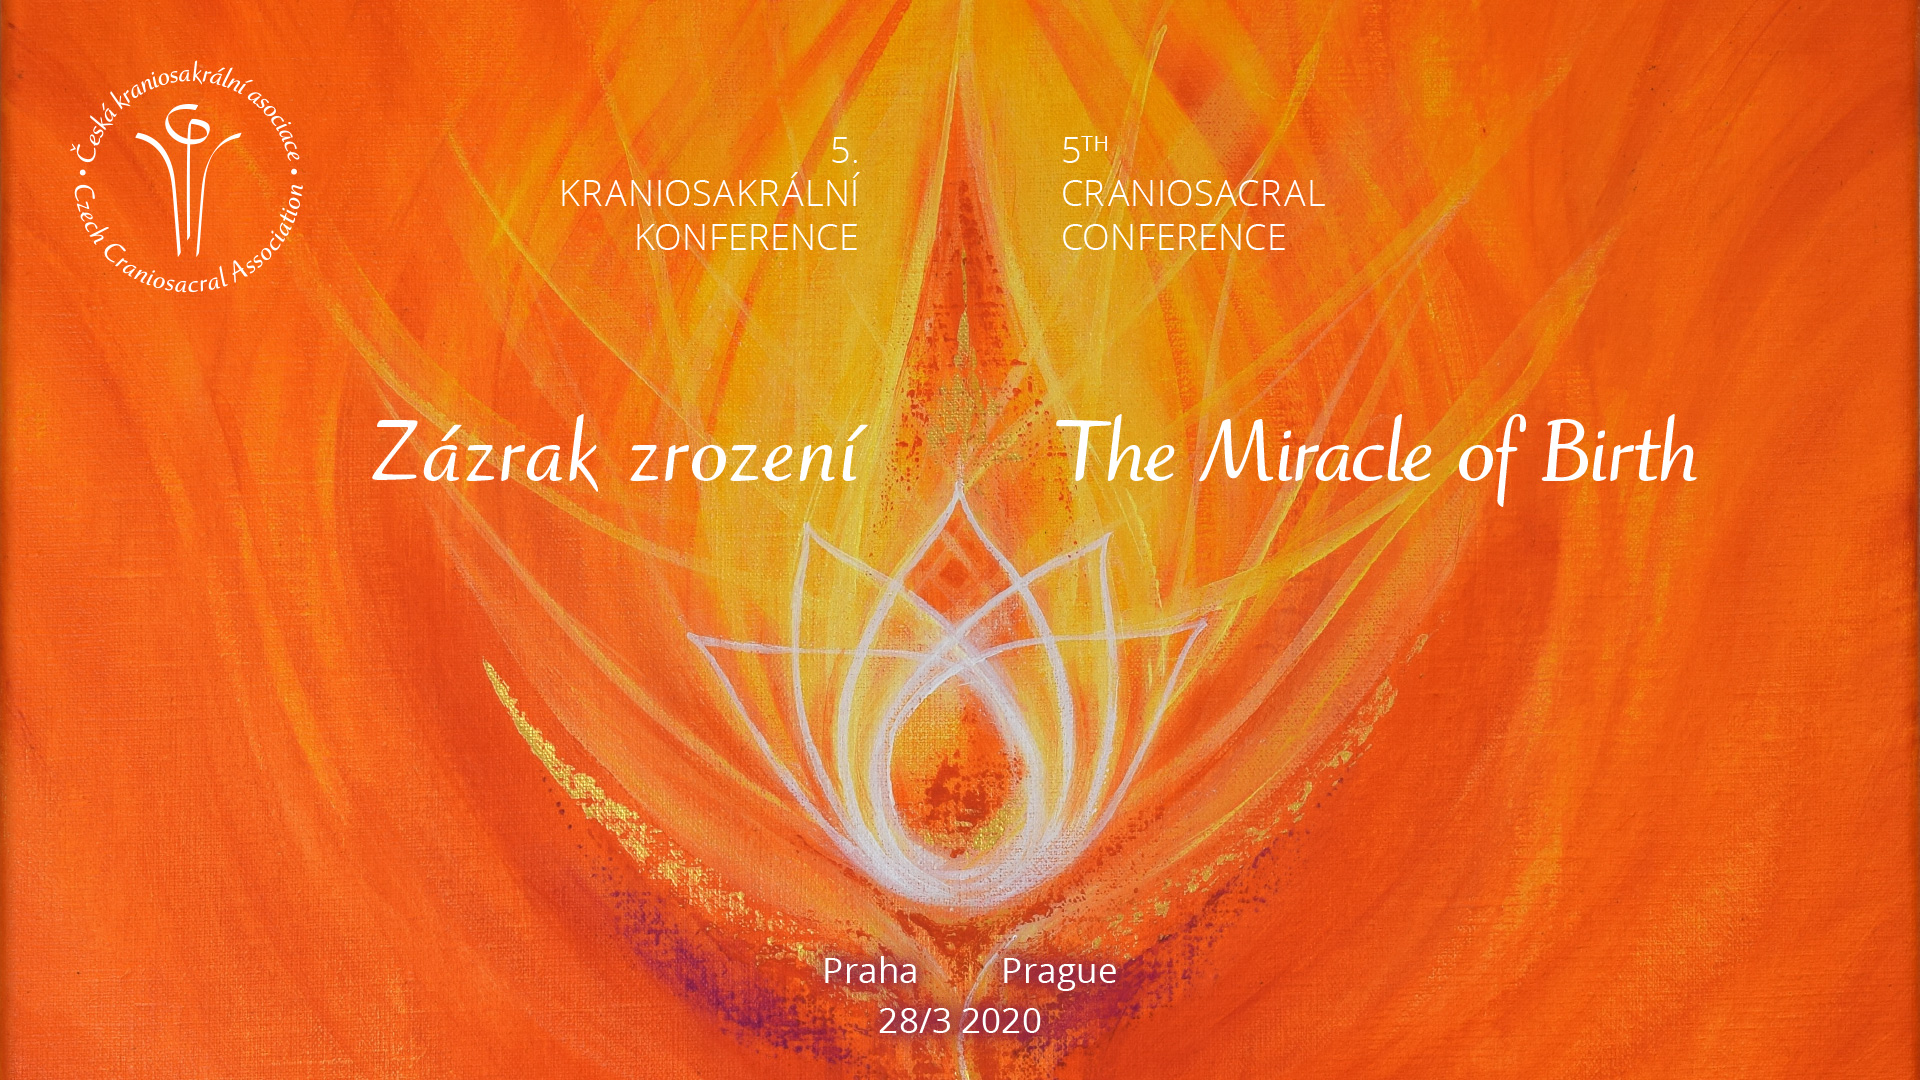 The Miracle of Birth - 5th Czech Craniosacral Conference